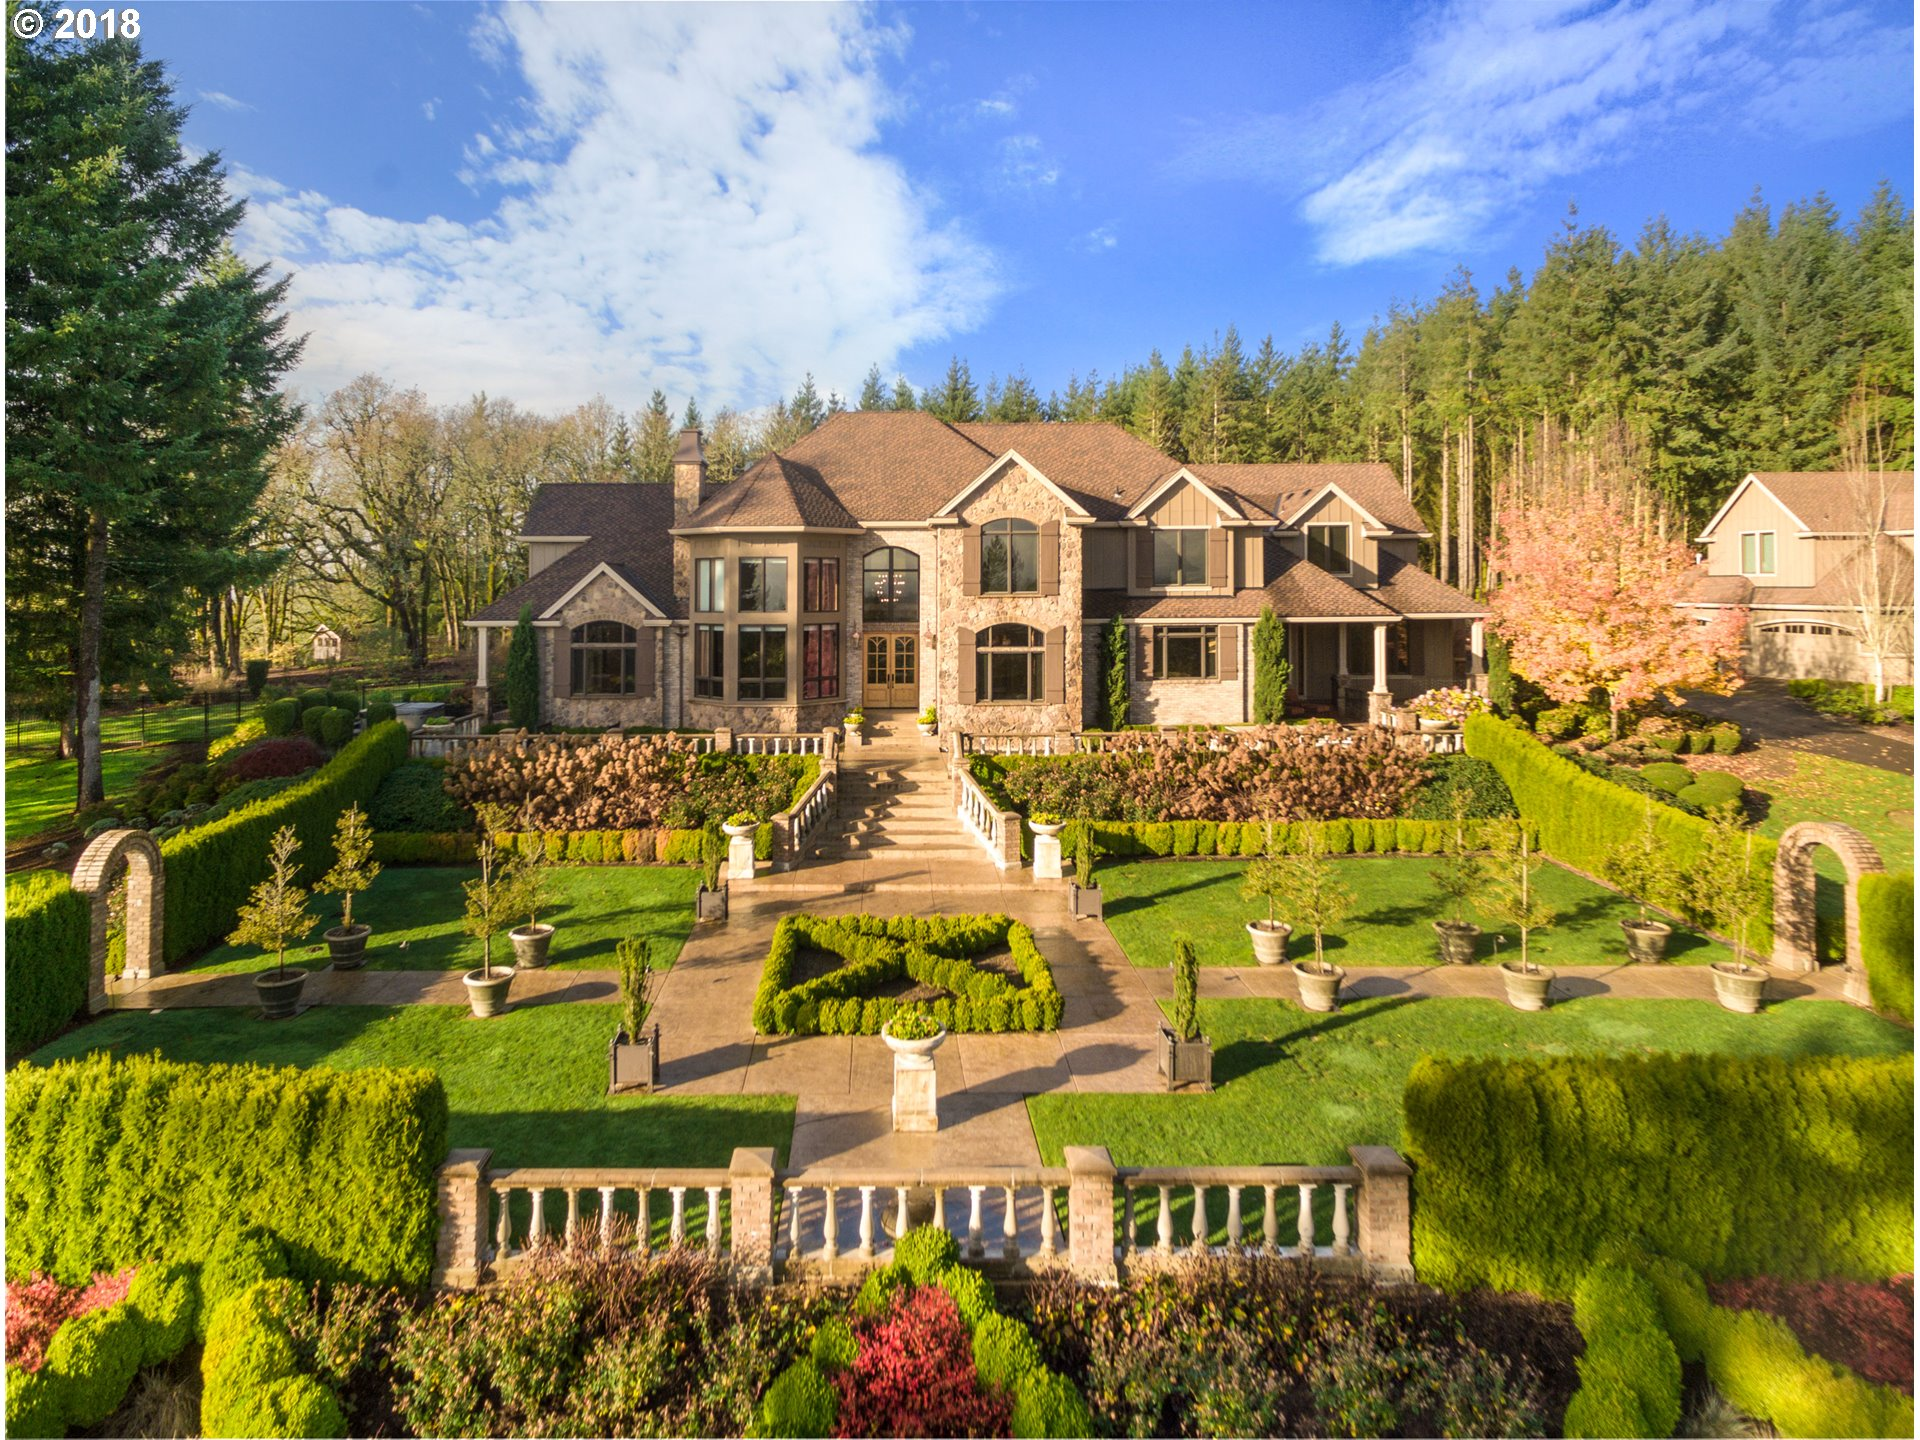 Situated on 20 acres w/panoramic views of Mt. Hood & the Willamette Valley, this 7,000+sf, 8-car garage, gated, vineyard home - is an entertainers dream! Gourmet kitchen opens to stunning family room; main level master w/private hot-tub; year-round heated/cooled, indoor/outdoor kitchen w/fireplace/TV; theatre/playroom with full wet-bar & new state of the art sound & security system. Outdoor amenities. Close to Oregon Golf Club.